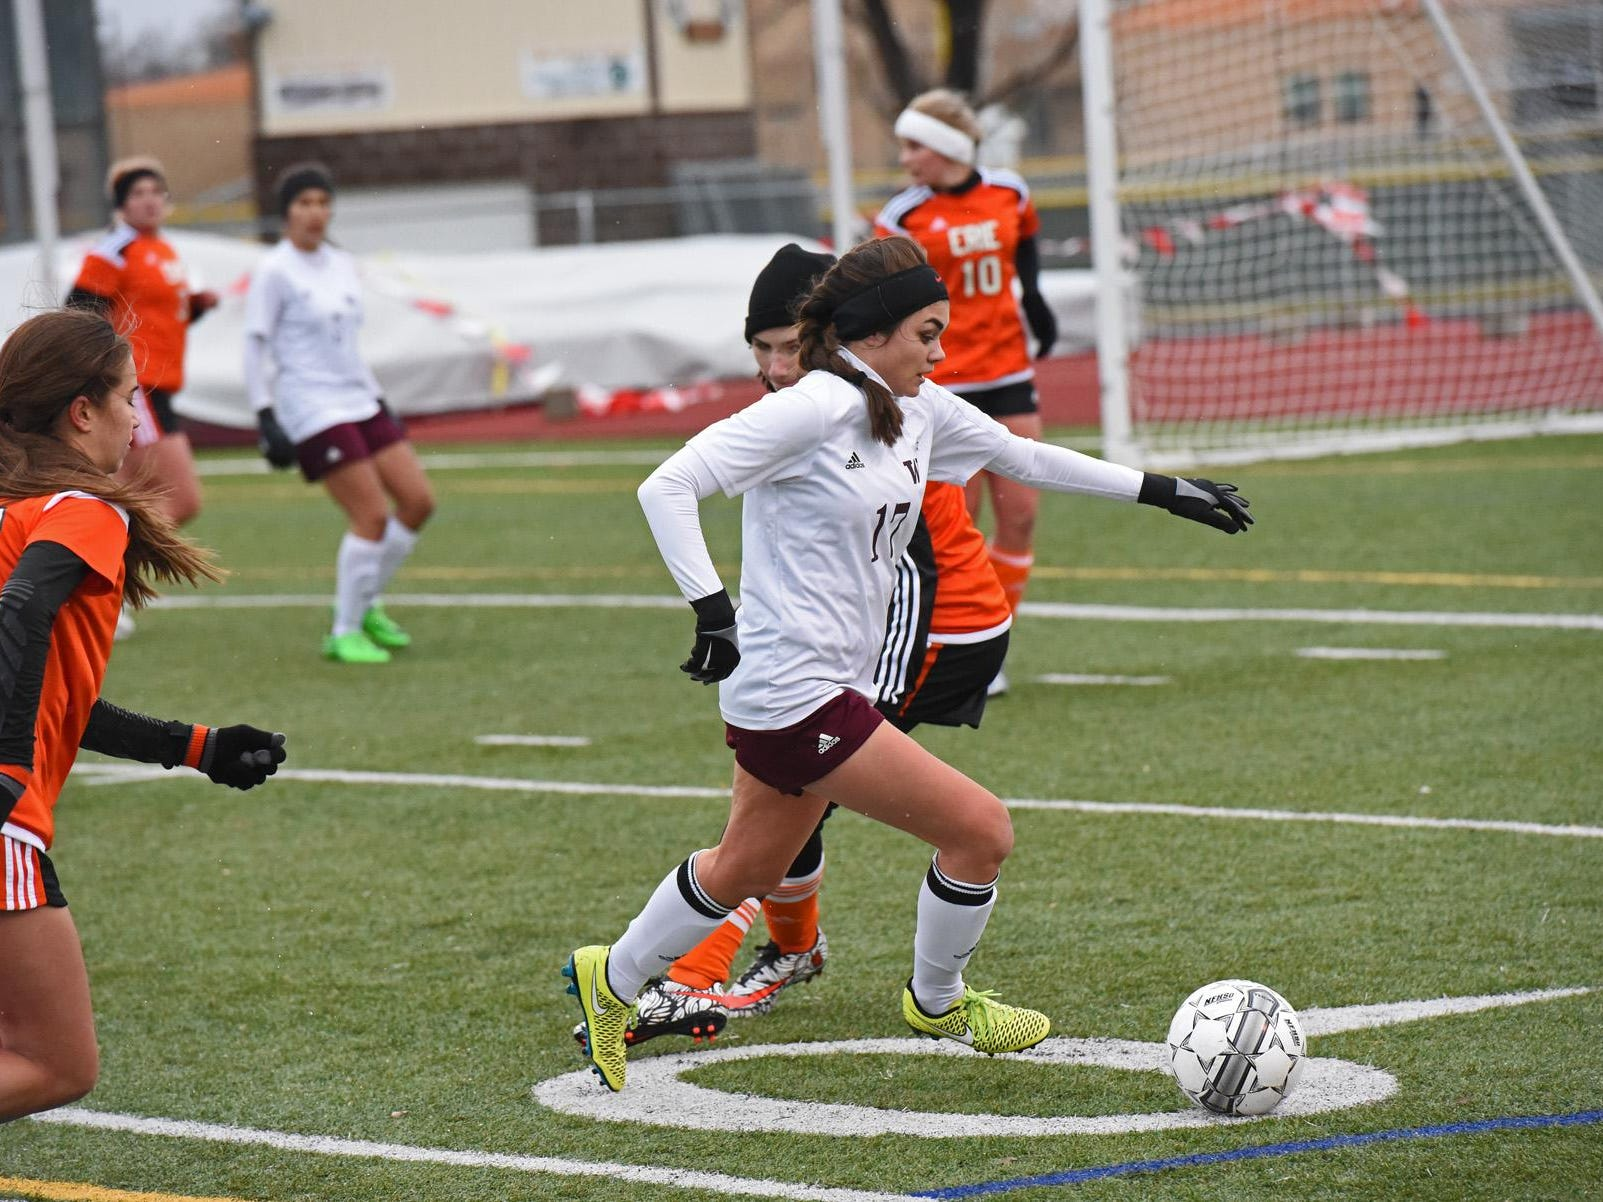 Windsor sophomore Alysa Lobato sets up a pass aganst Erie last week. Windsor is ranked No. 5 in Class 4A.